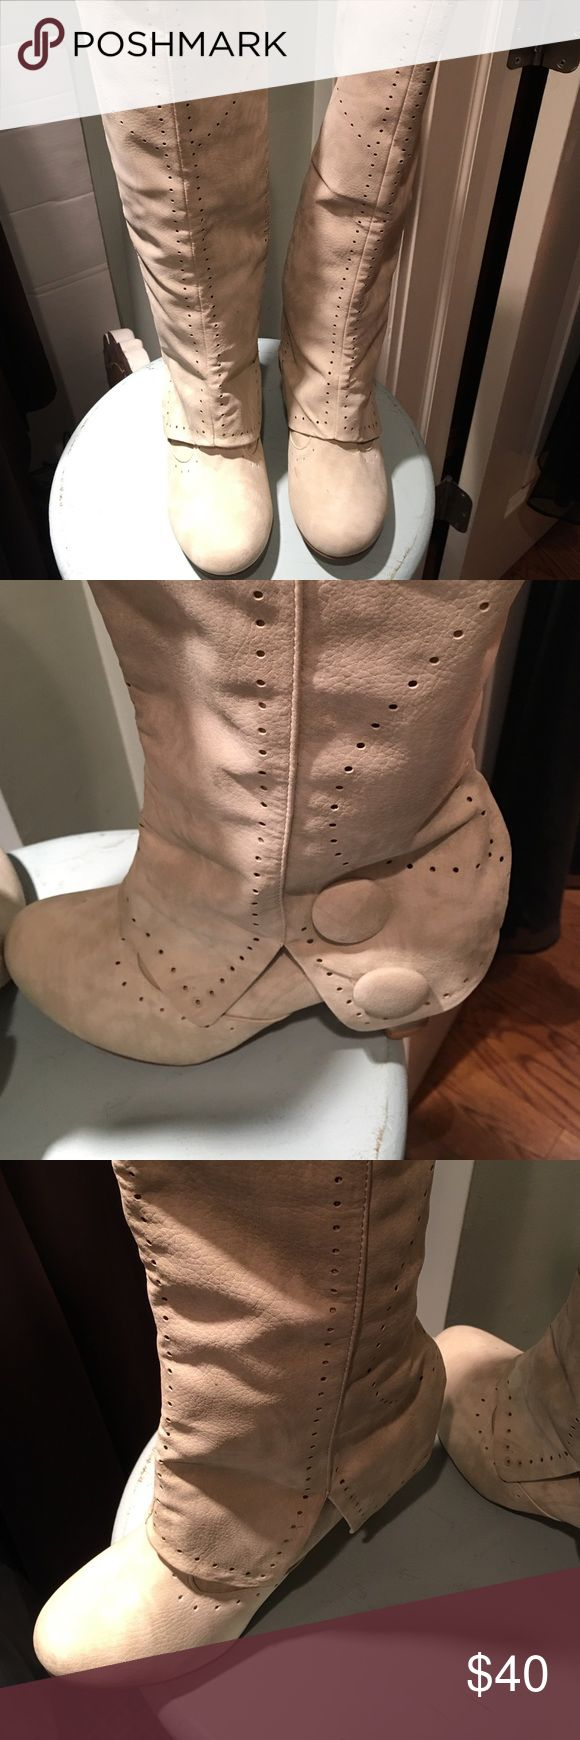 """""""Not Rated"""" tall boots Ivory/cream colored tall boots pull on. Man made material, 2 buttons design on bottom flaps. Good condition Not Rated Shoes Heeled Boots"""